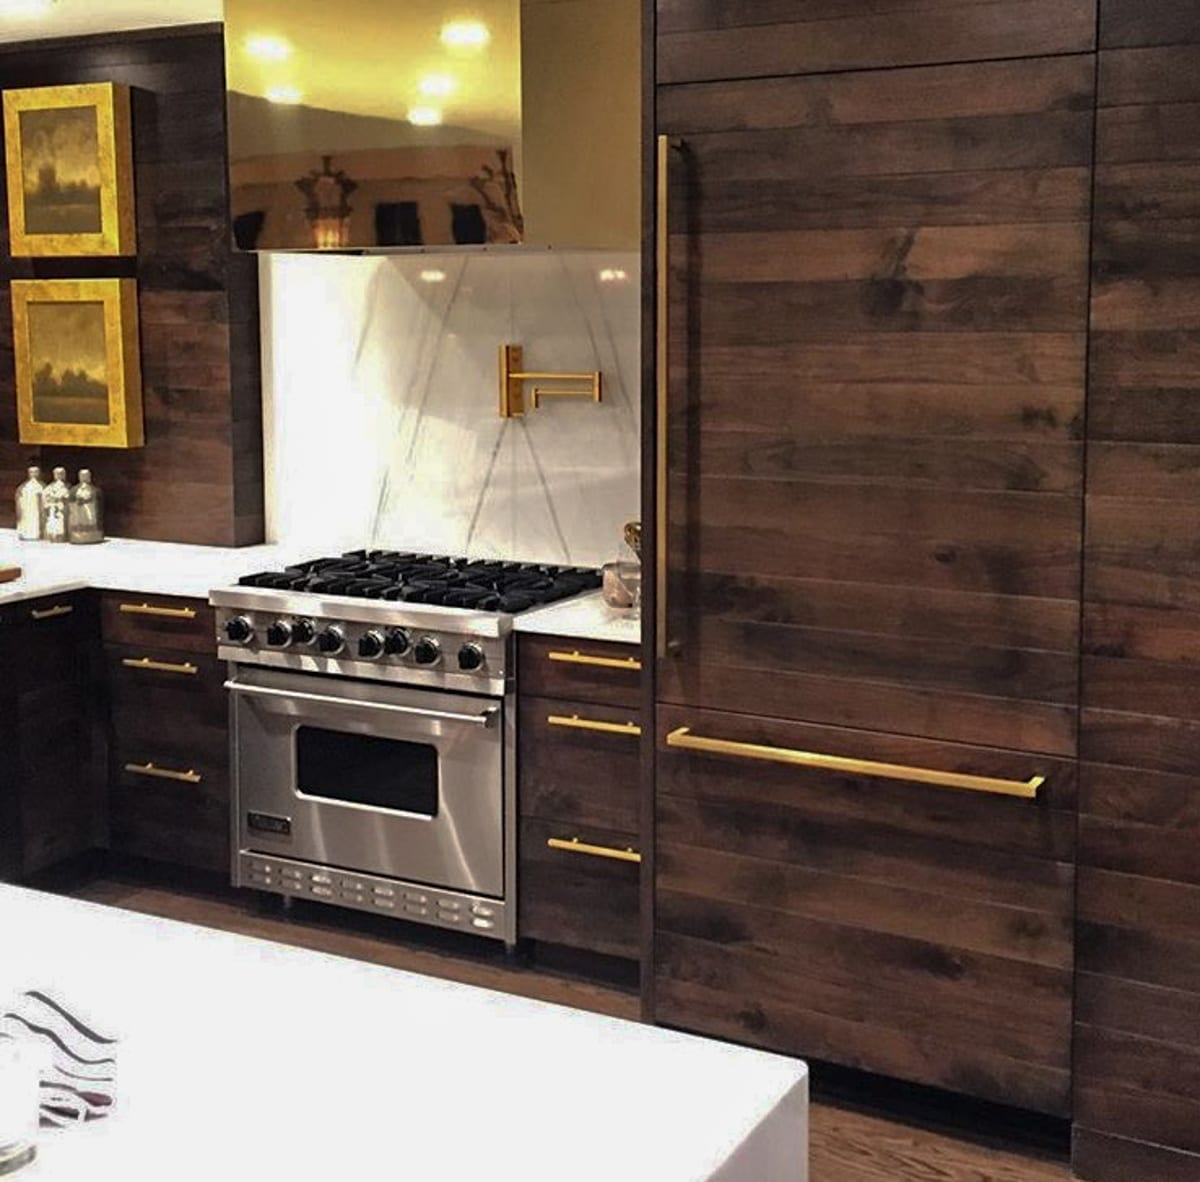 Kitchen Cabinets Island Shelves Cabinetry White Walnut: Walnut Kitchen Cabinets With Gold Accents